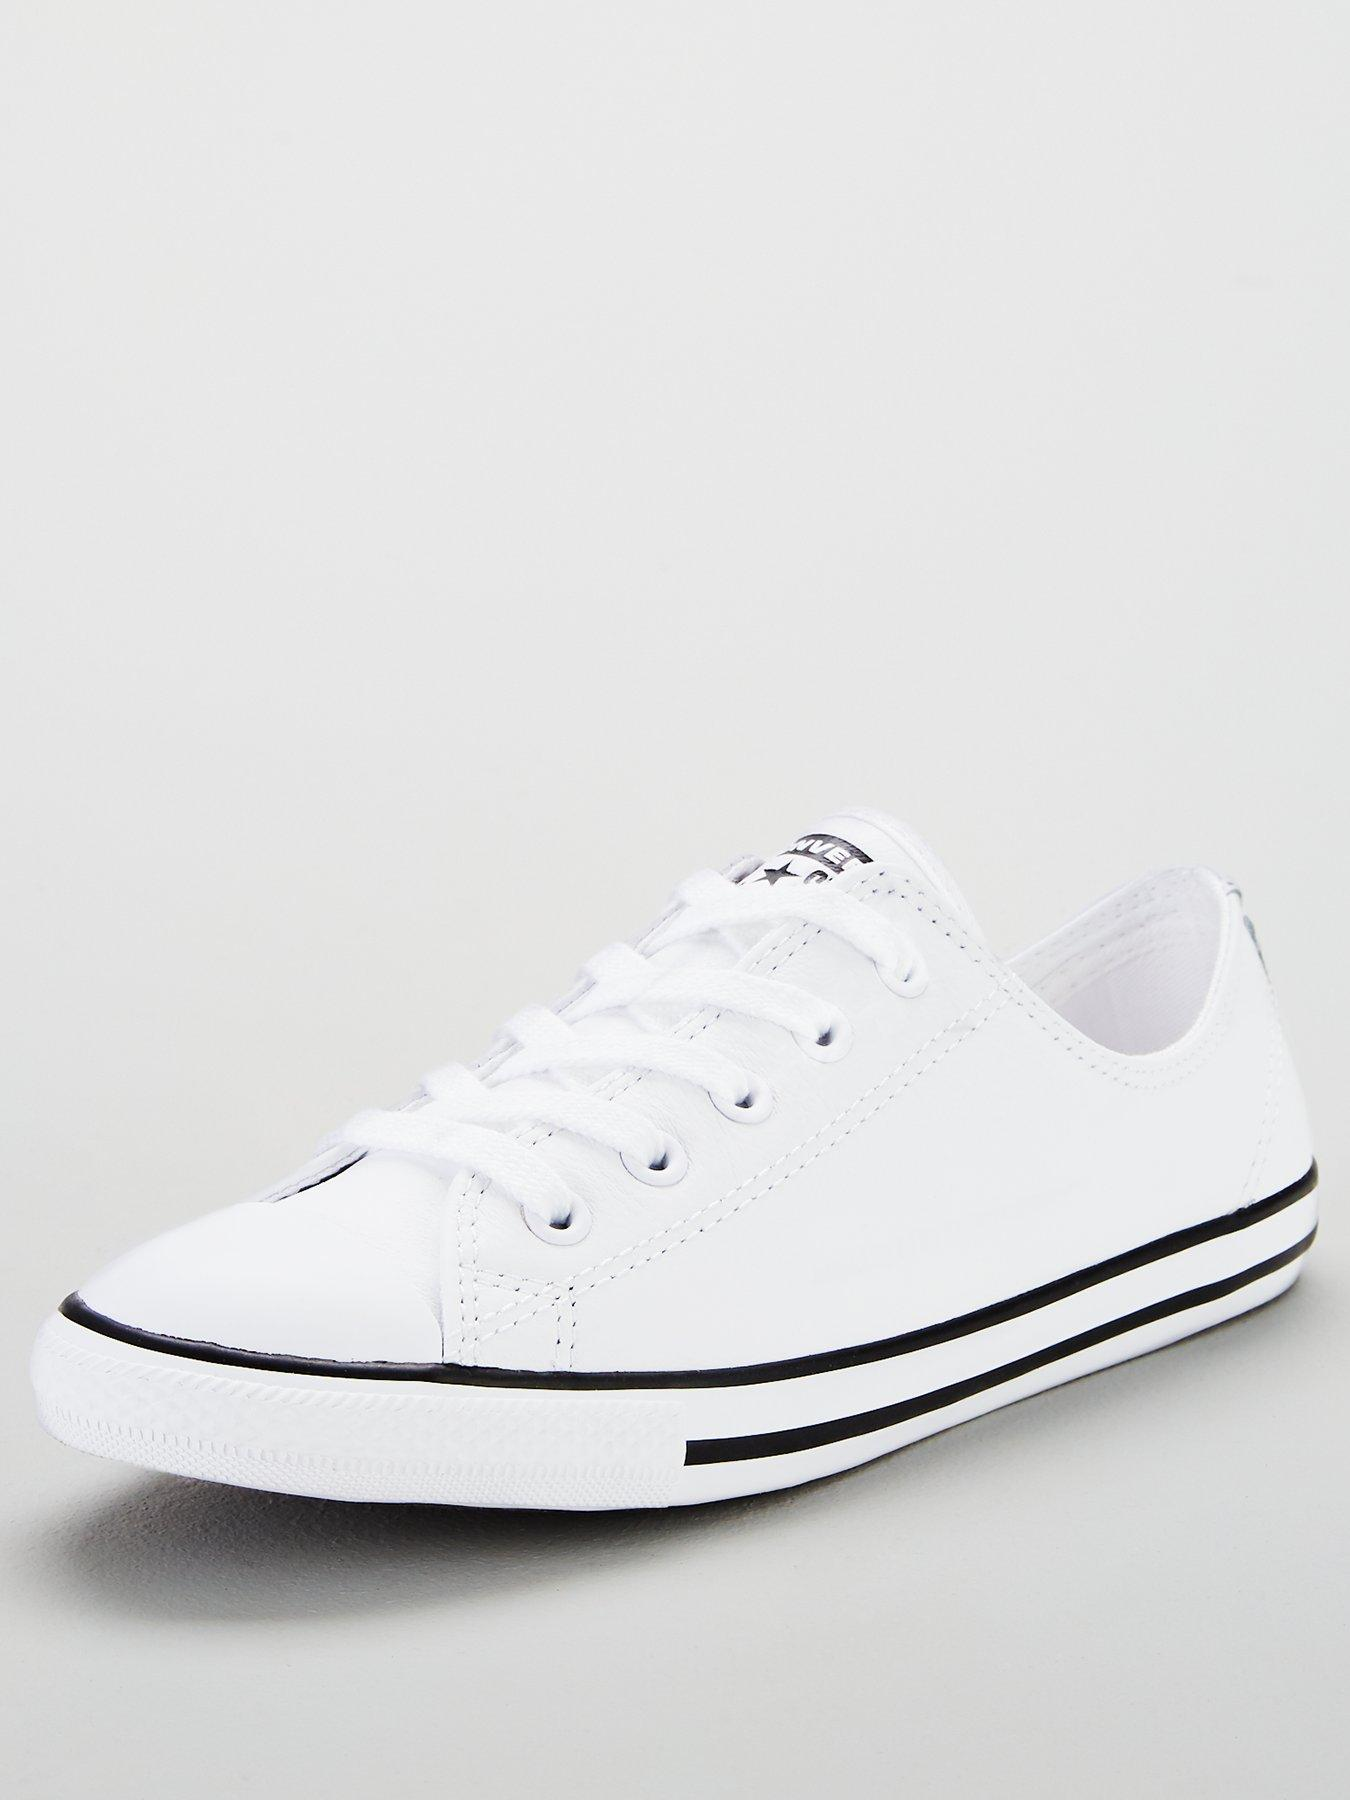 e04b94b161638 ... norway converse chuck taylor all star dainty leather ox white 4d6a9  904f7